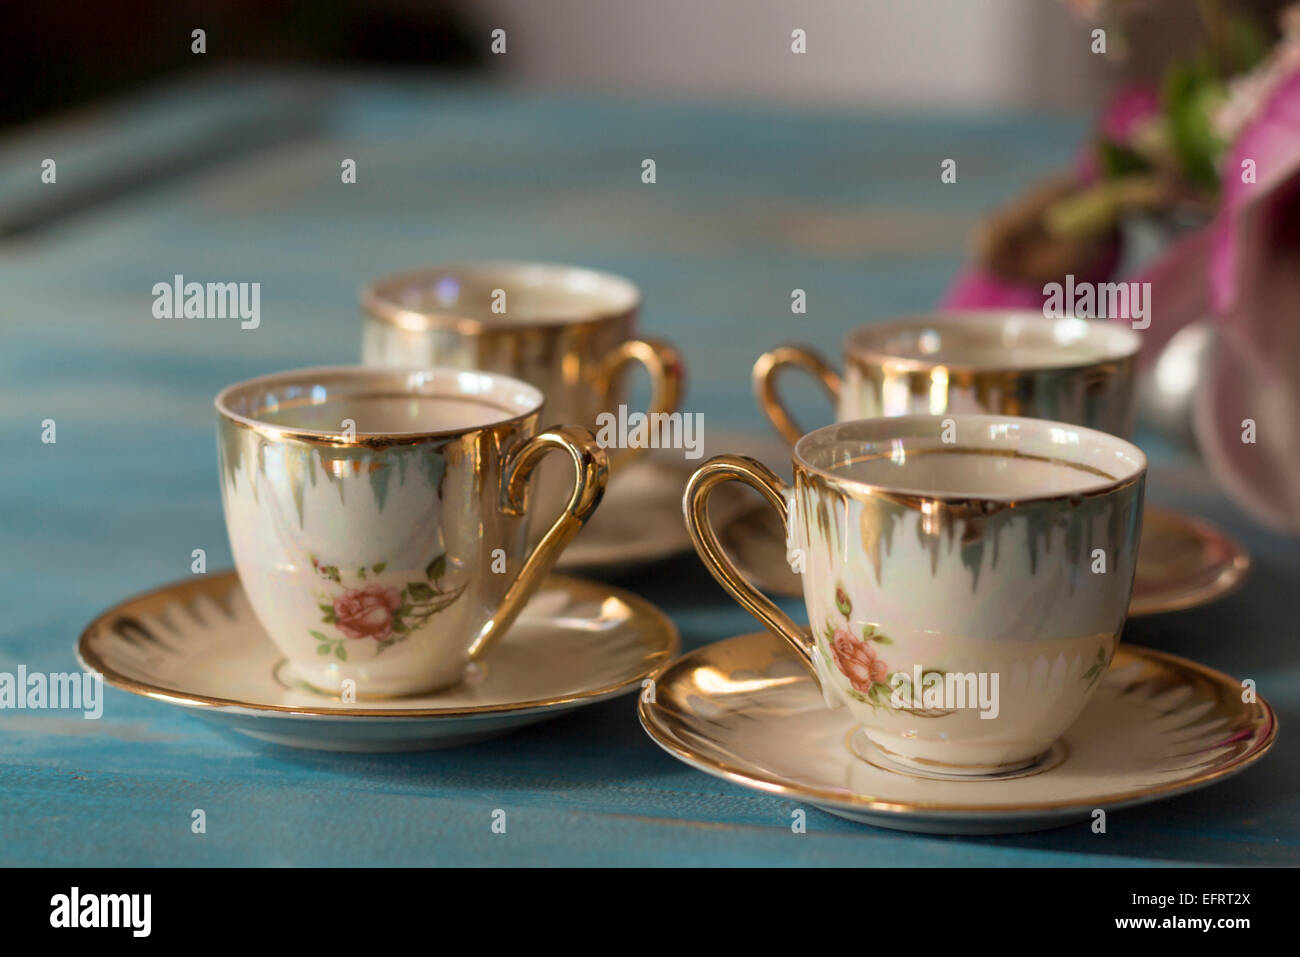 Vintage tea cups with saucers on old wooden table. - Stock Image